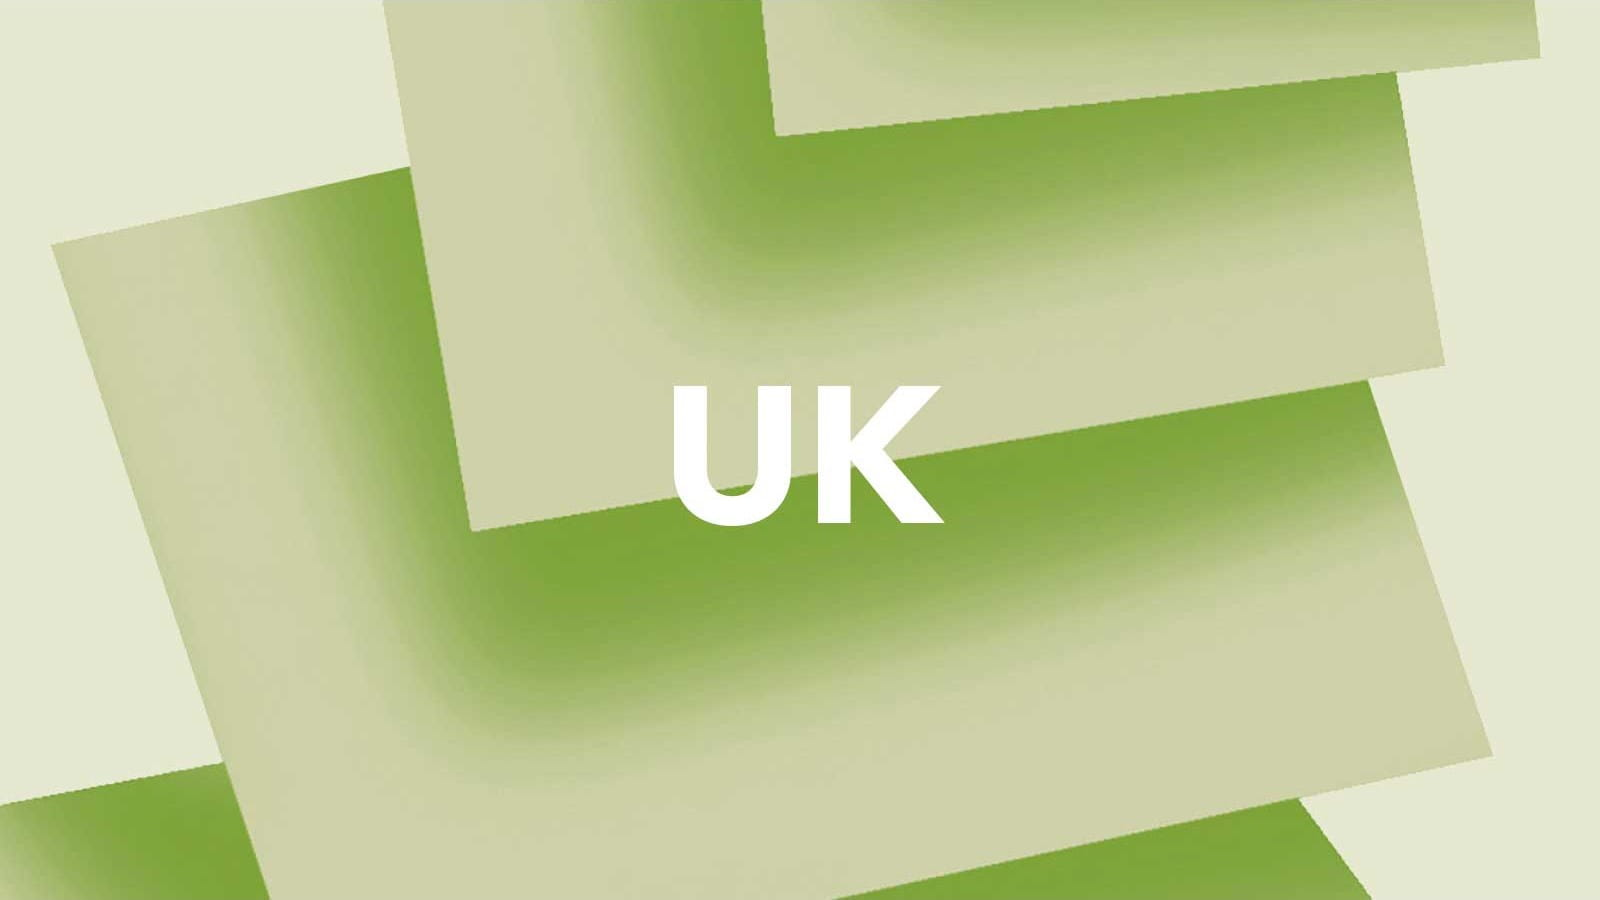 The letters 'UK' on a green background